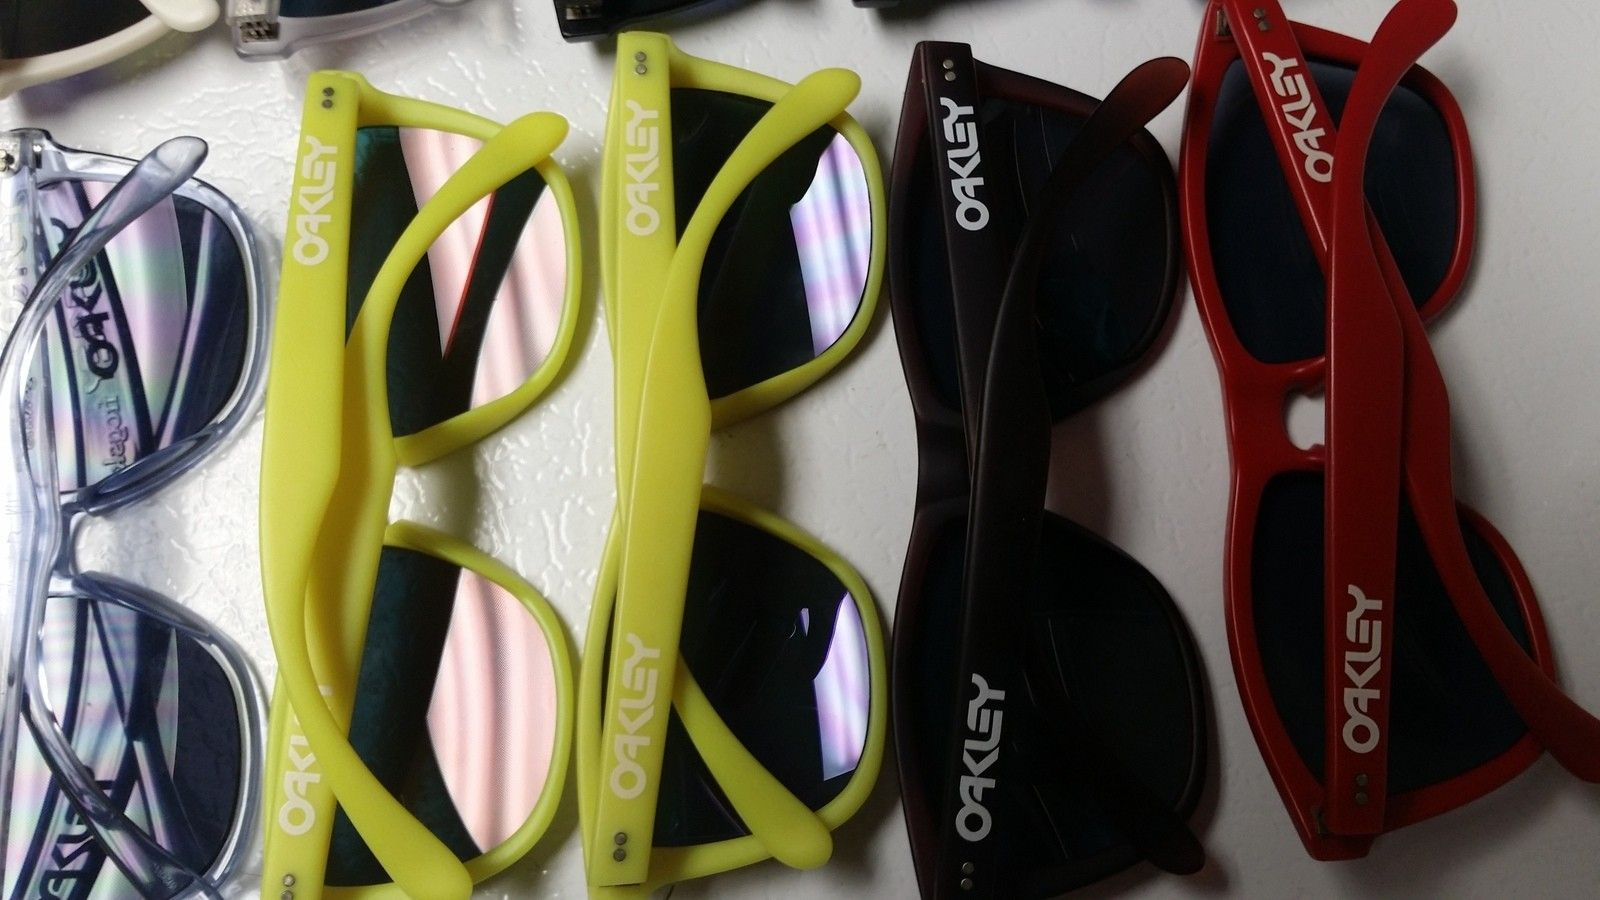 Differences in sizing between 1st generation frogskins. - 1438426144353-1602104773.jpg